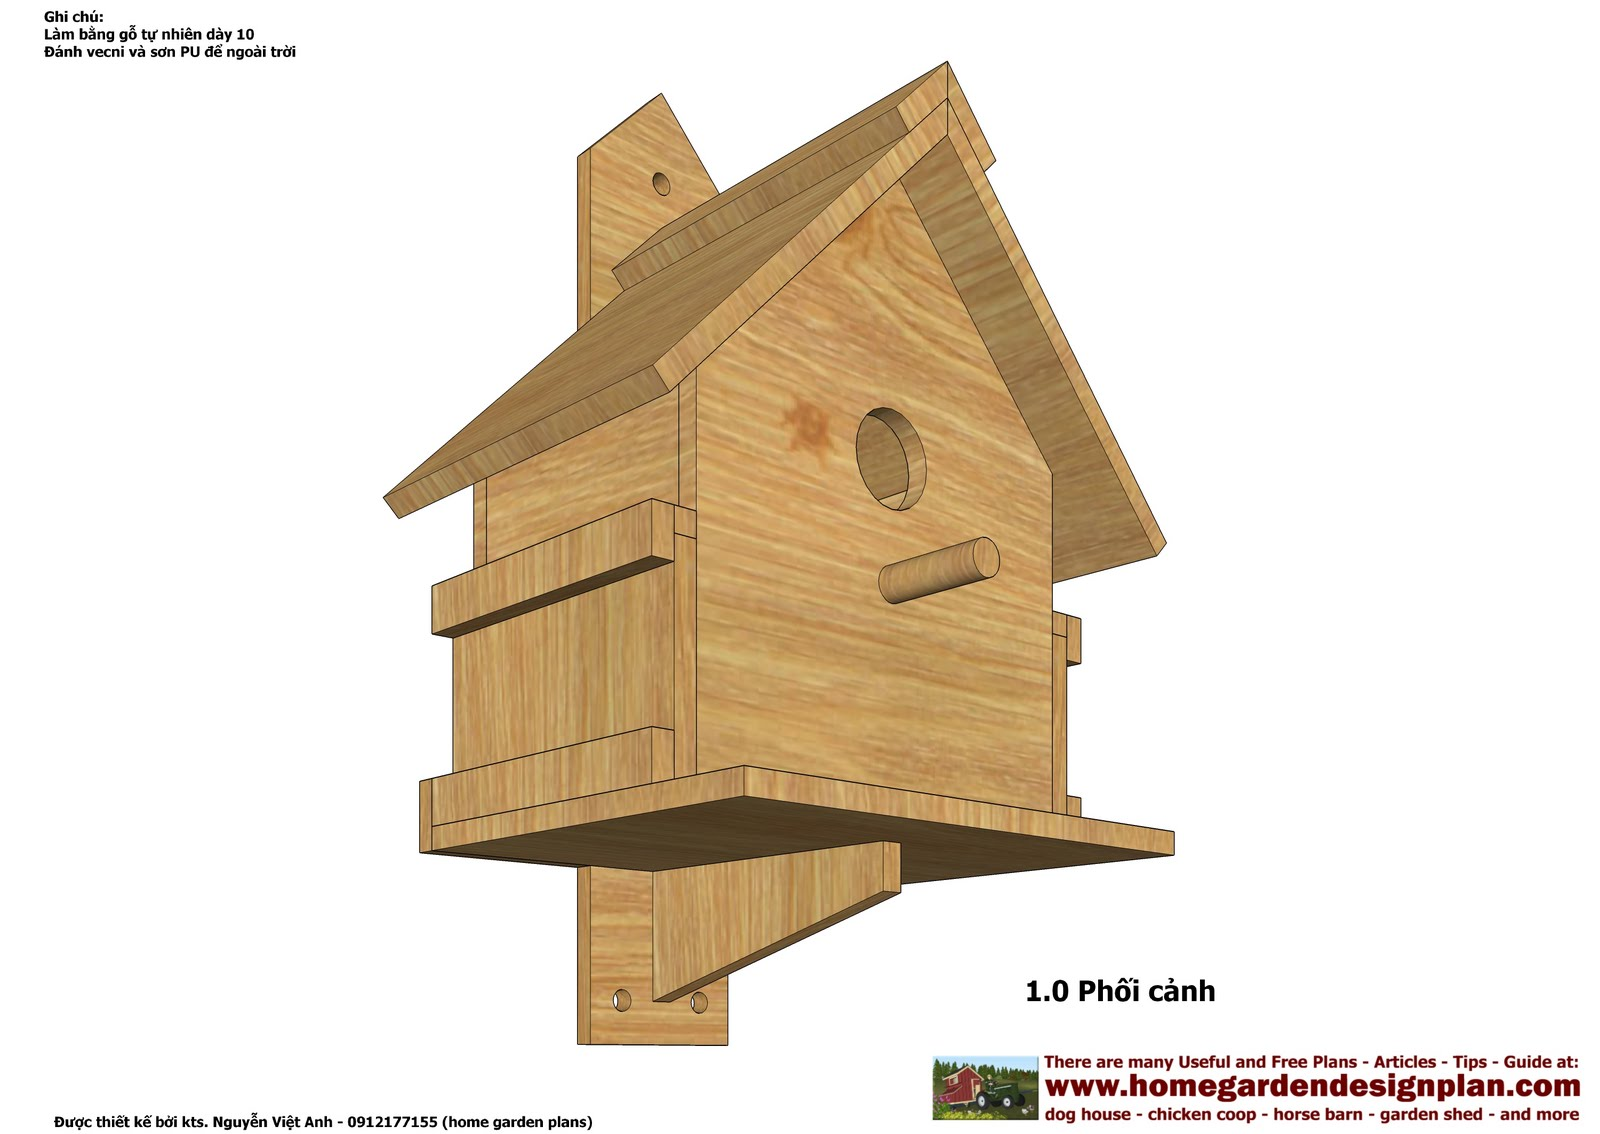 Home garden plans bh100 bird house plans construction Blueprints of houses to build